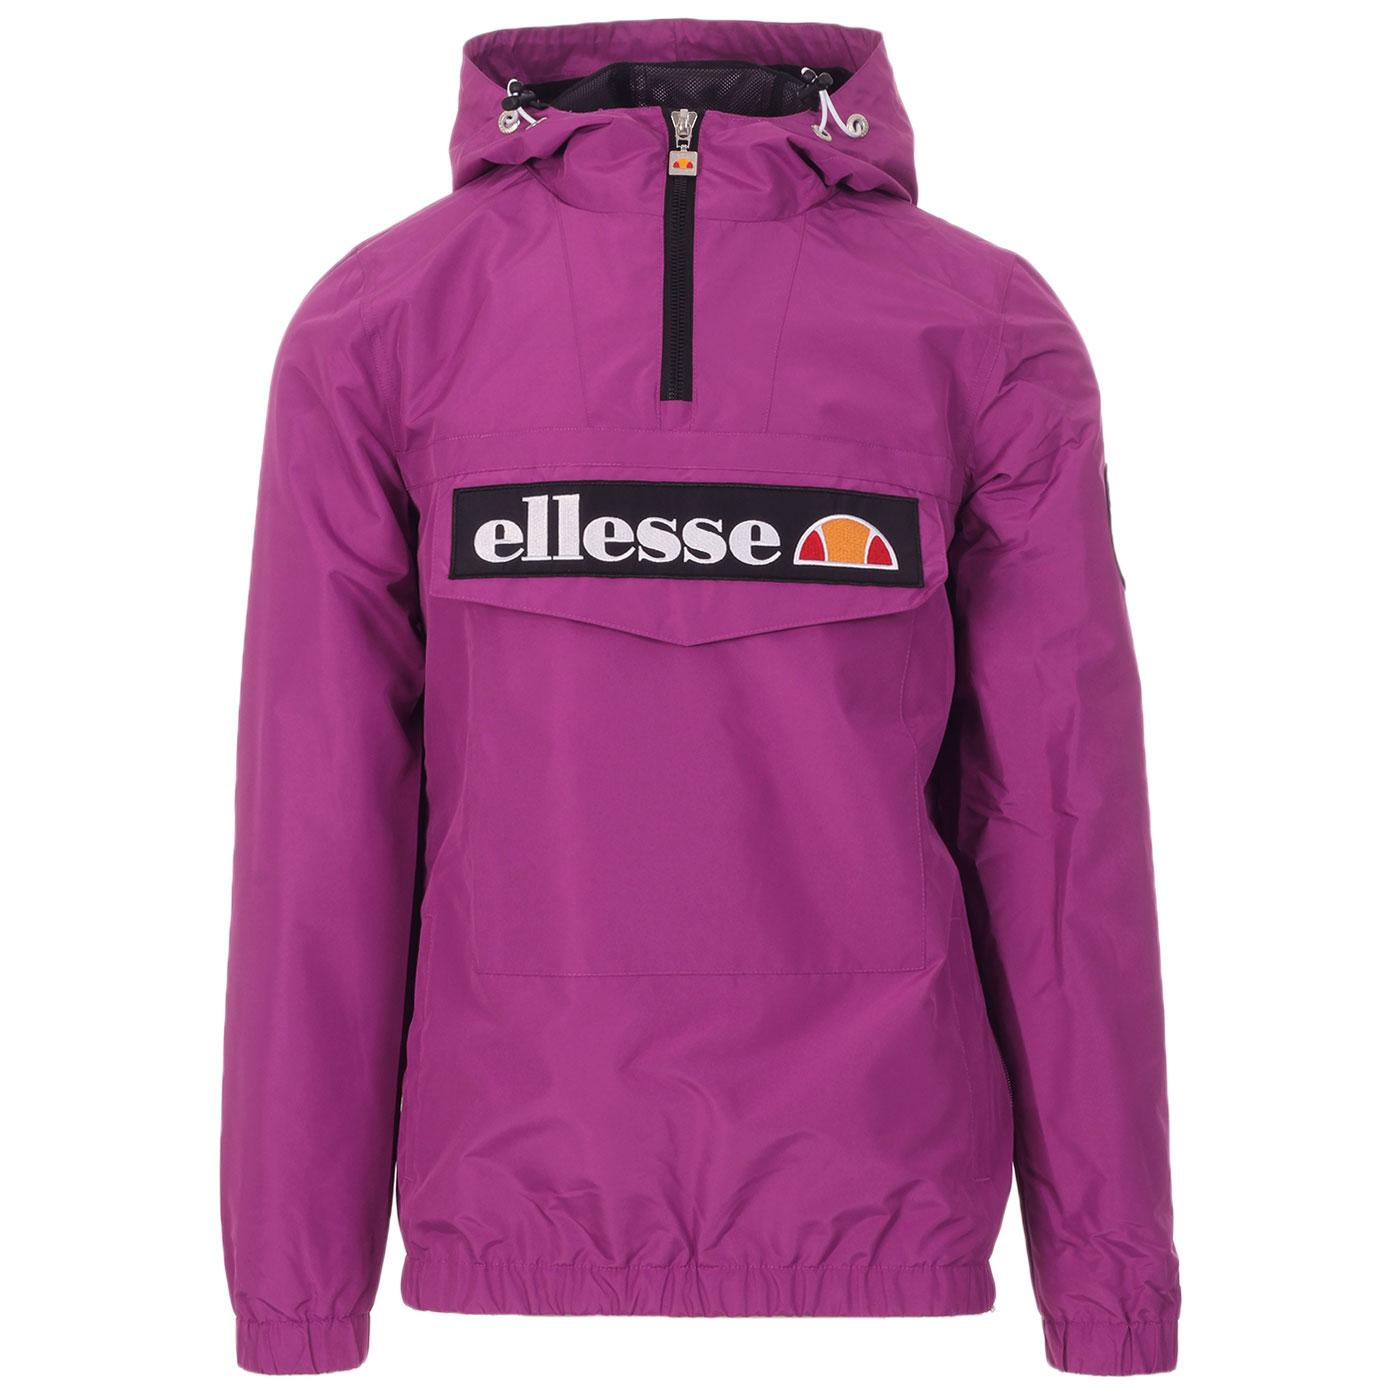 Mont 2 ELLESSE Retro 80s Overhead Jacket (Purple)